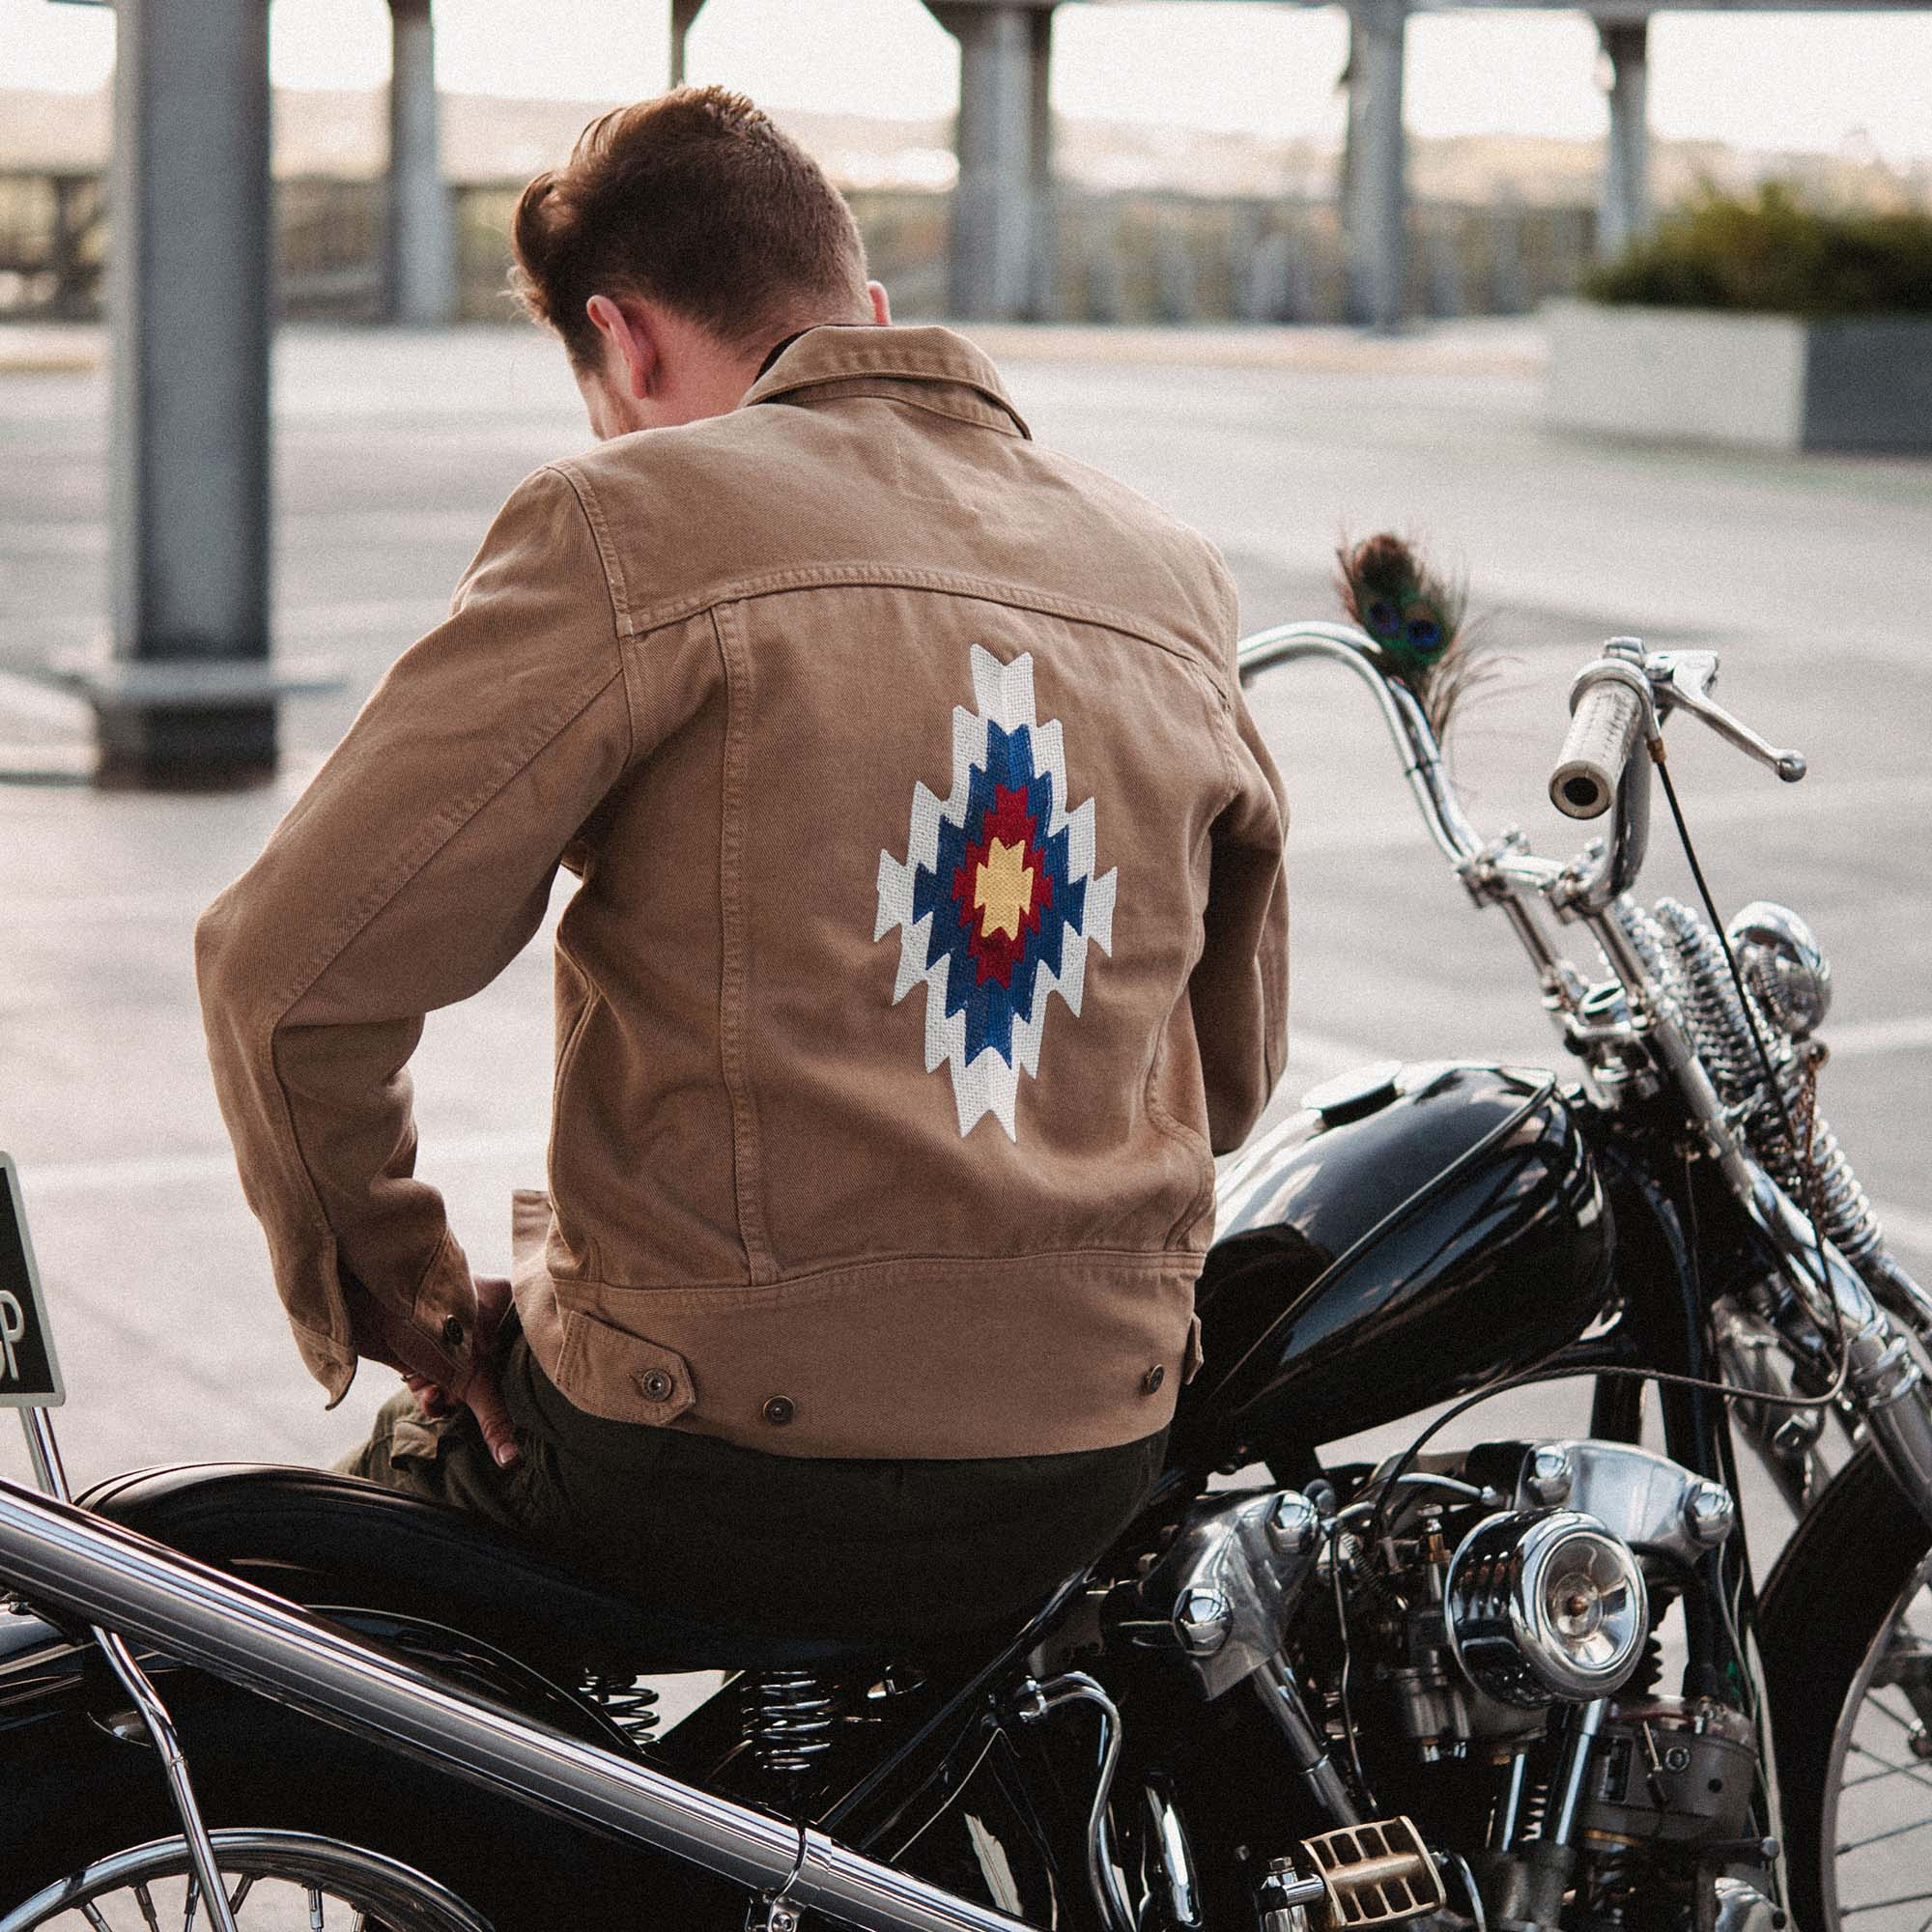 shangri-la-heritage-new-single-rider-sparviero-navajo-army-green-canvas-jacket-lifestyle-4